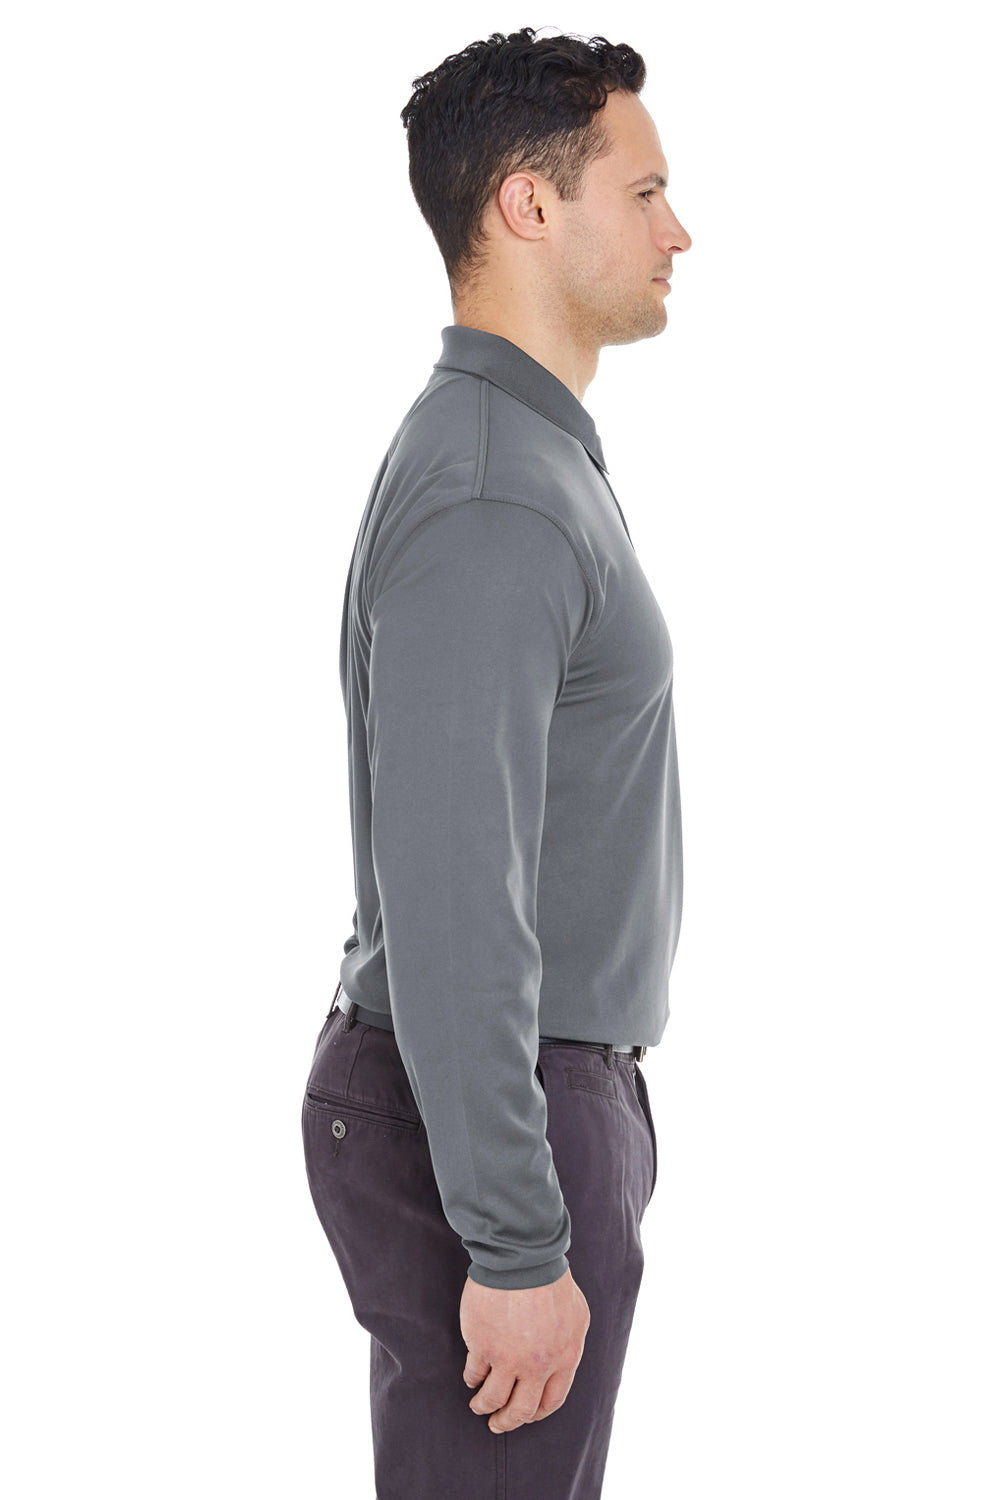 UltraClub 8210LS Mens Cool & Dry Moisture Wicking Long Sleeve Polo Shirt Charcoal Grey Side